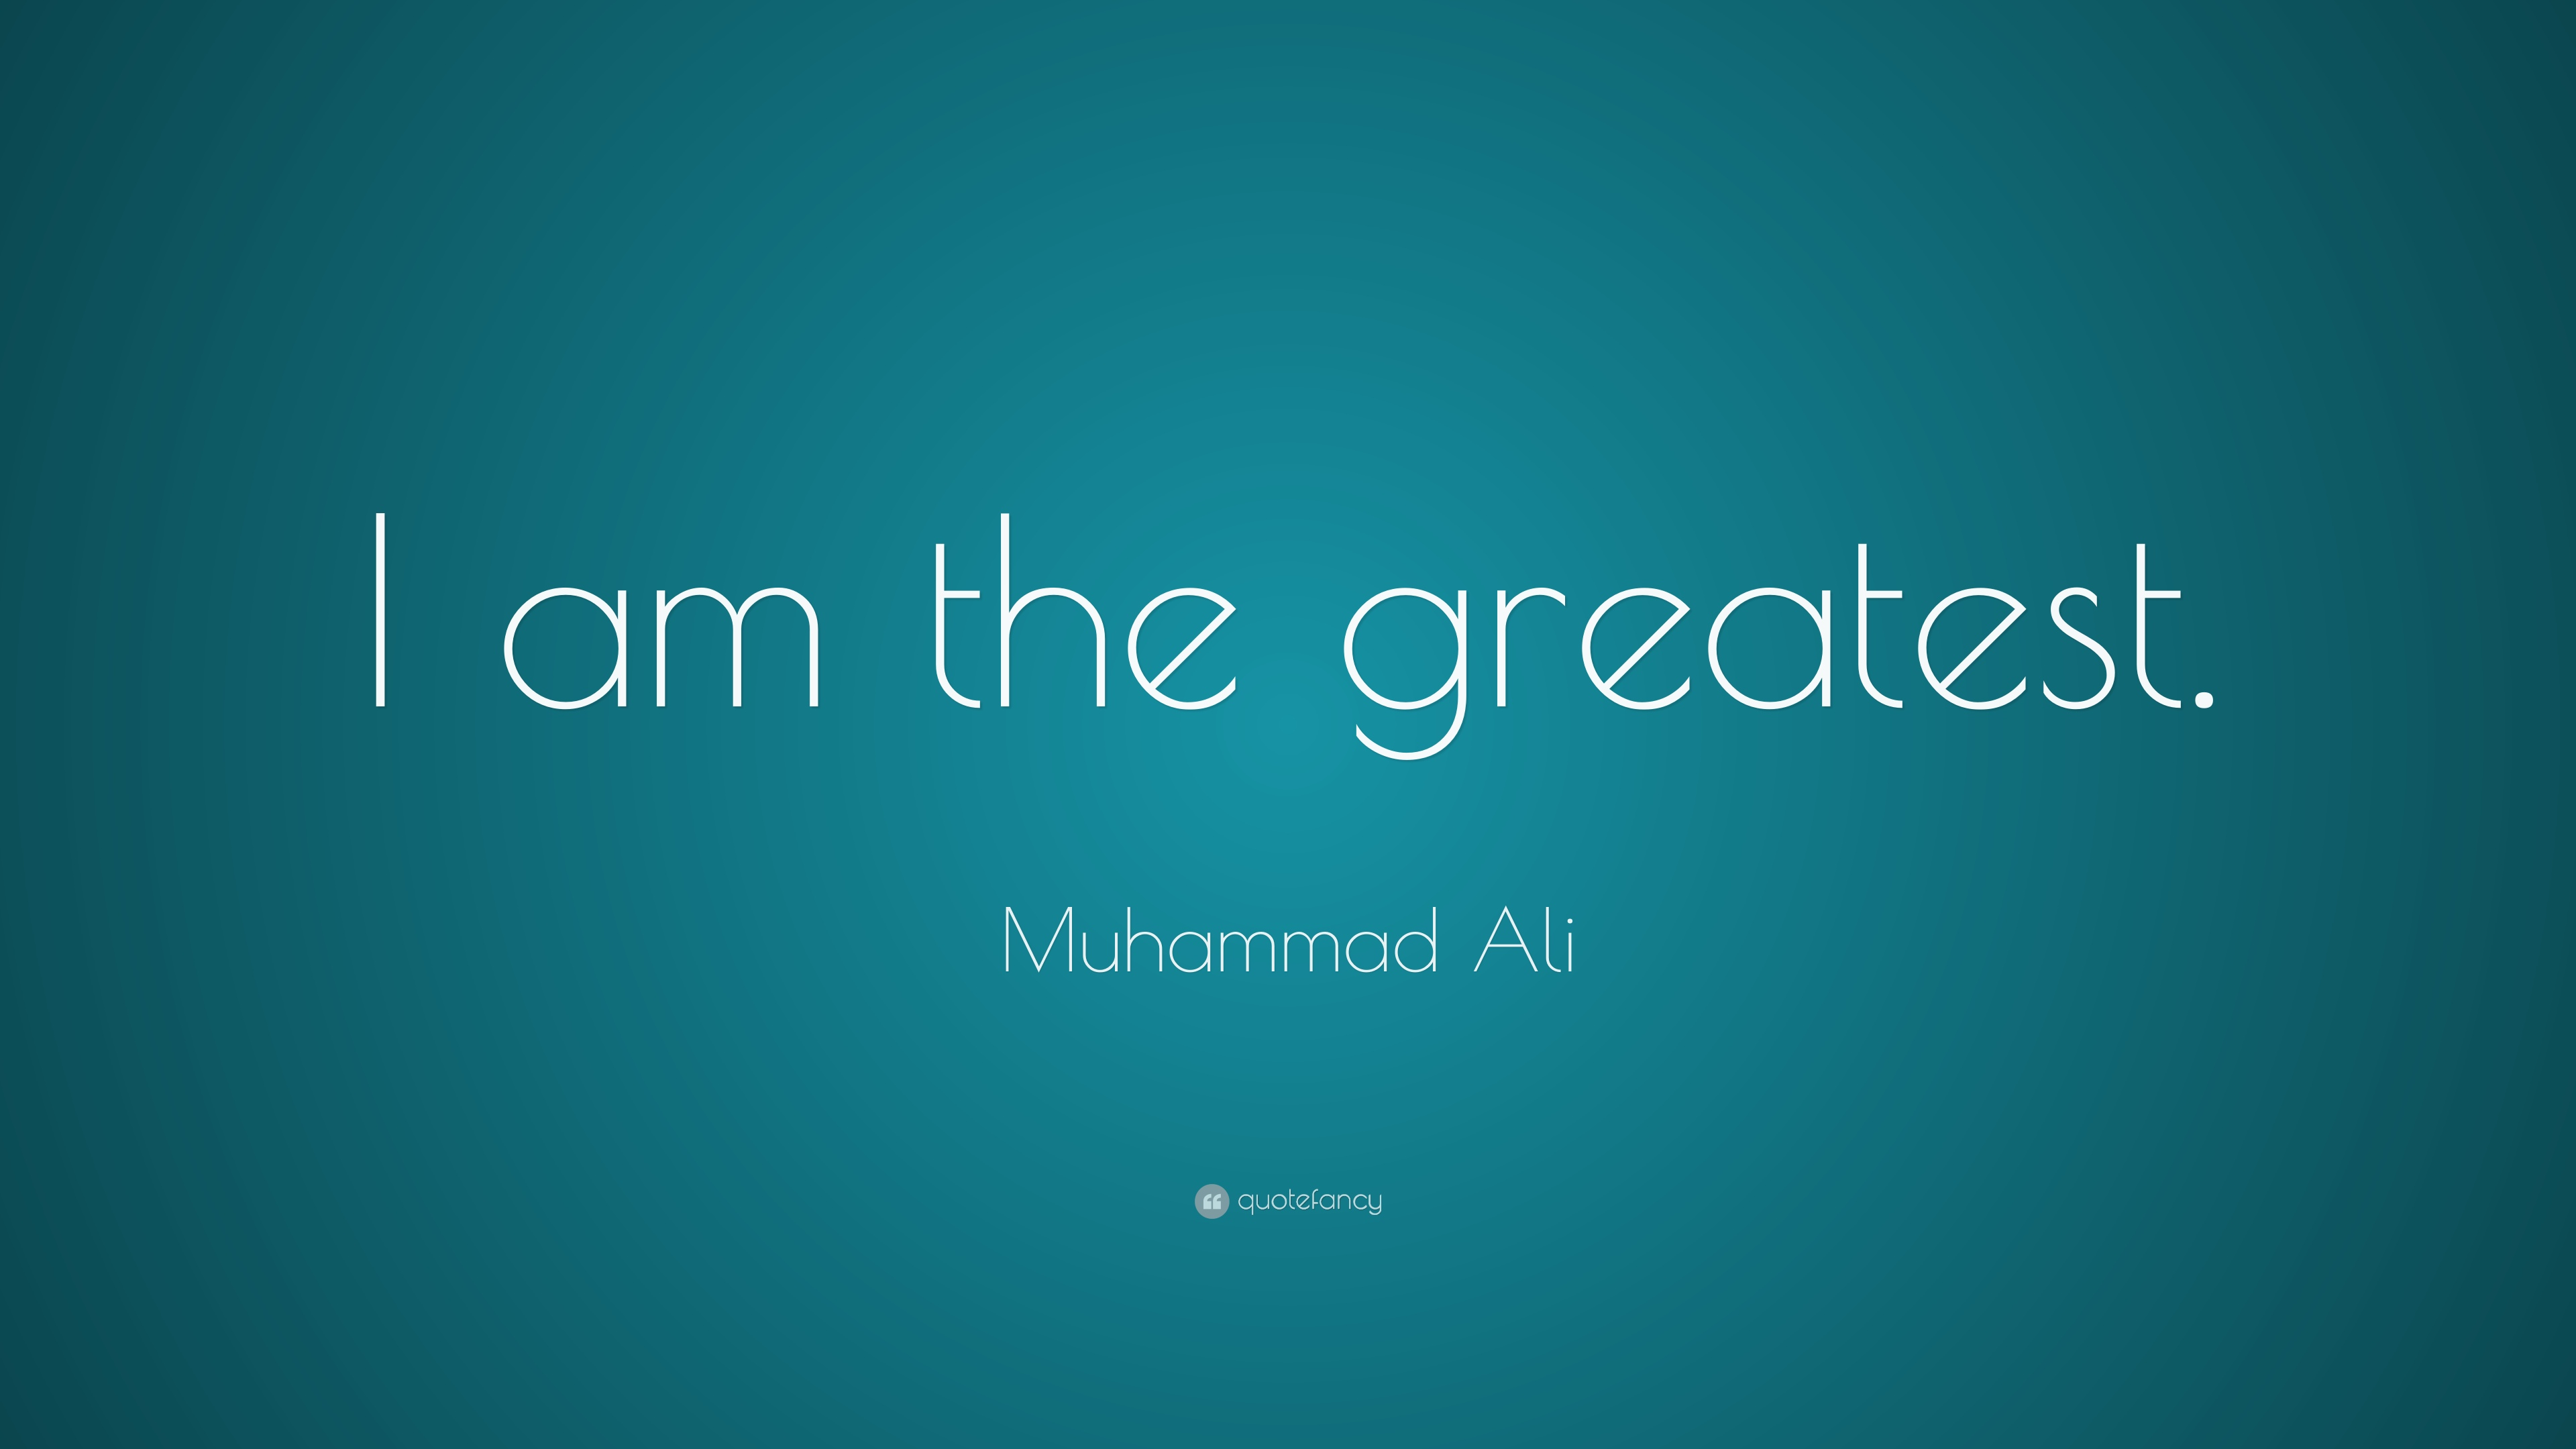 Muhammad Ali Quote - Don T Have Many Friends Quotes - HD Wallpaper